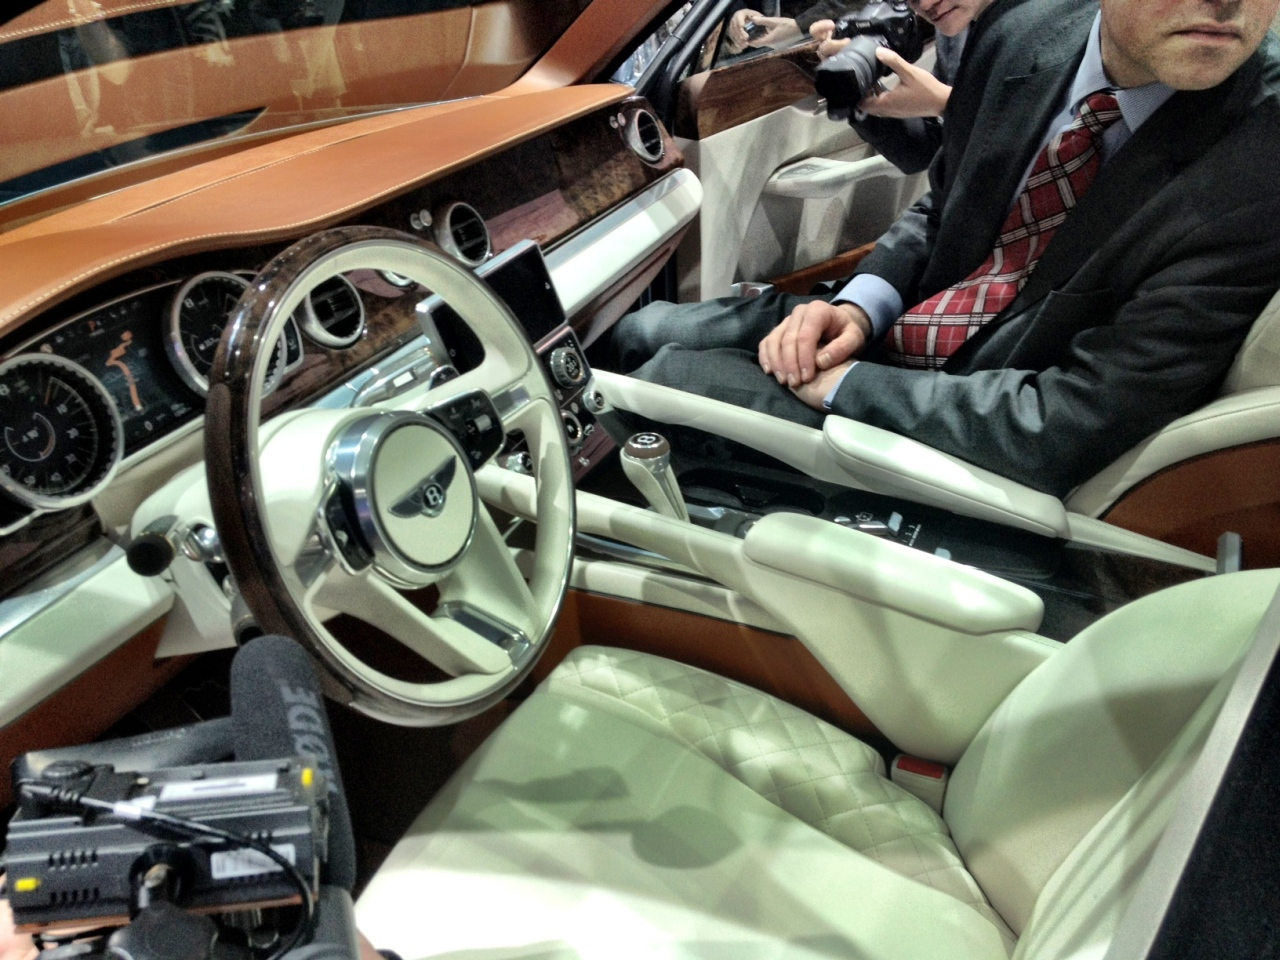 Bentley_EXP9-F_live_01.jpg